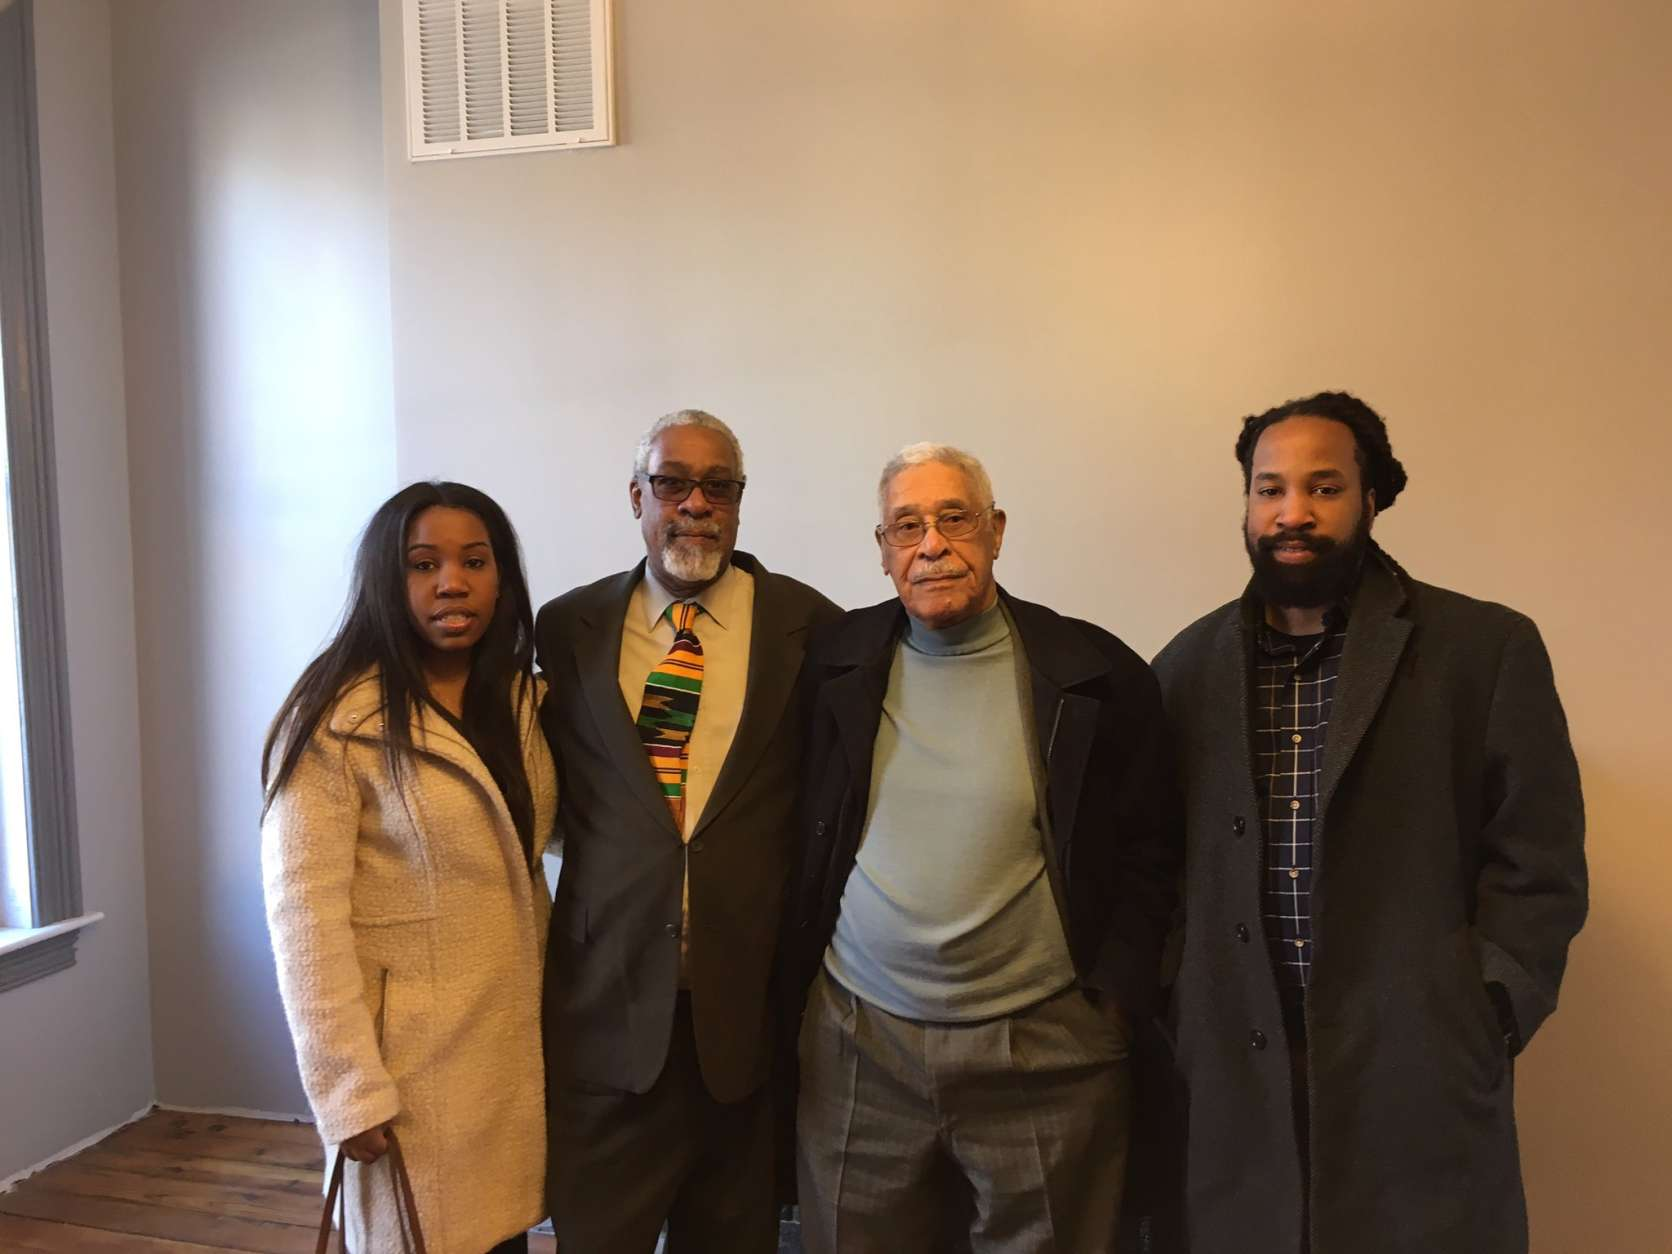 Robert Vest (3rd from left) worked for Dr. Woodson. He's in his 90s now. Pictured with son and grandchildren. (WTOP/Liz Anderson)